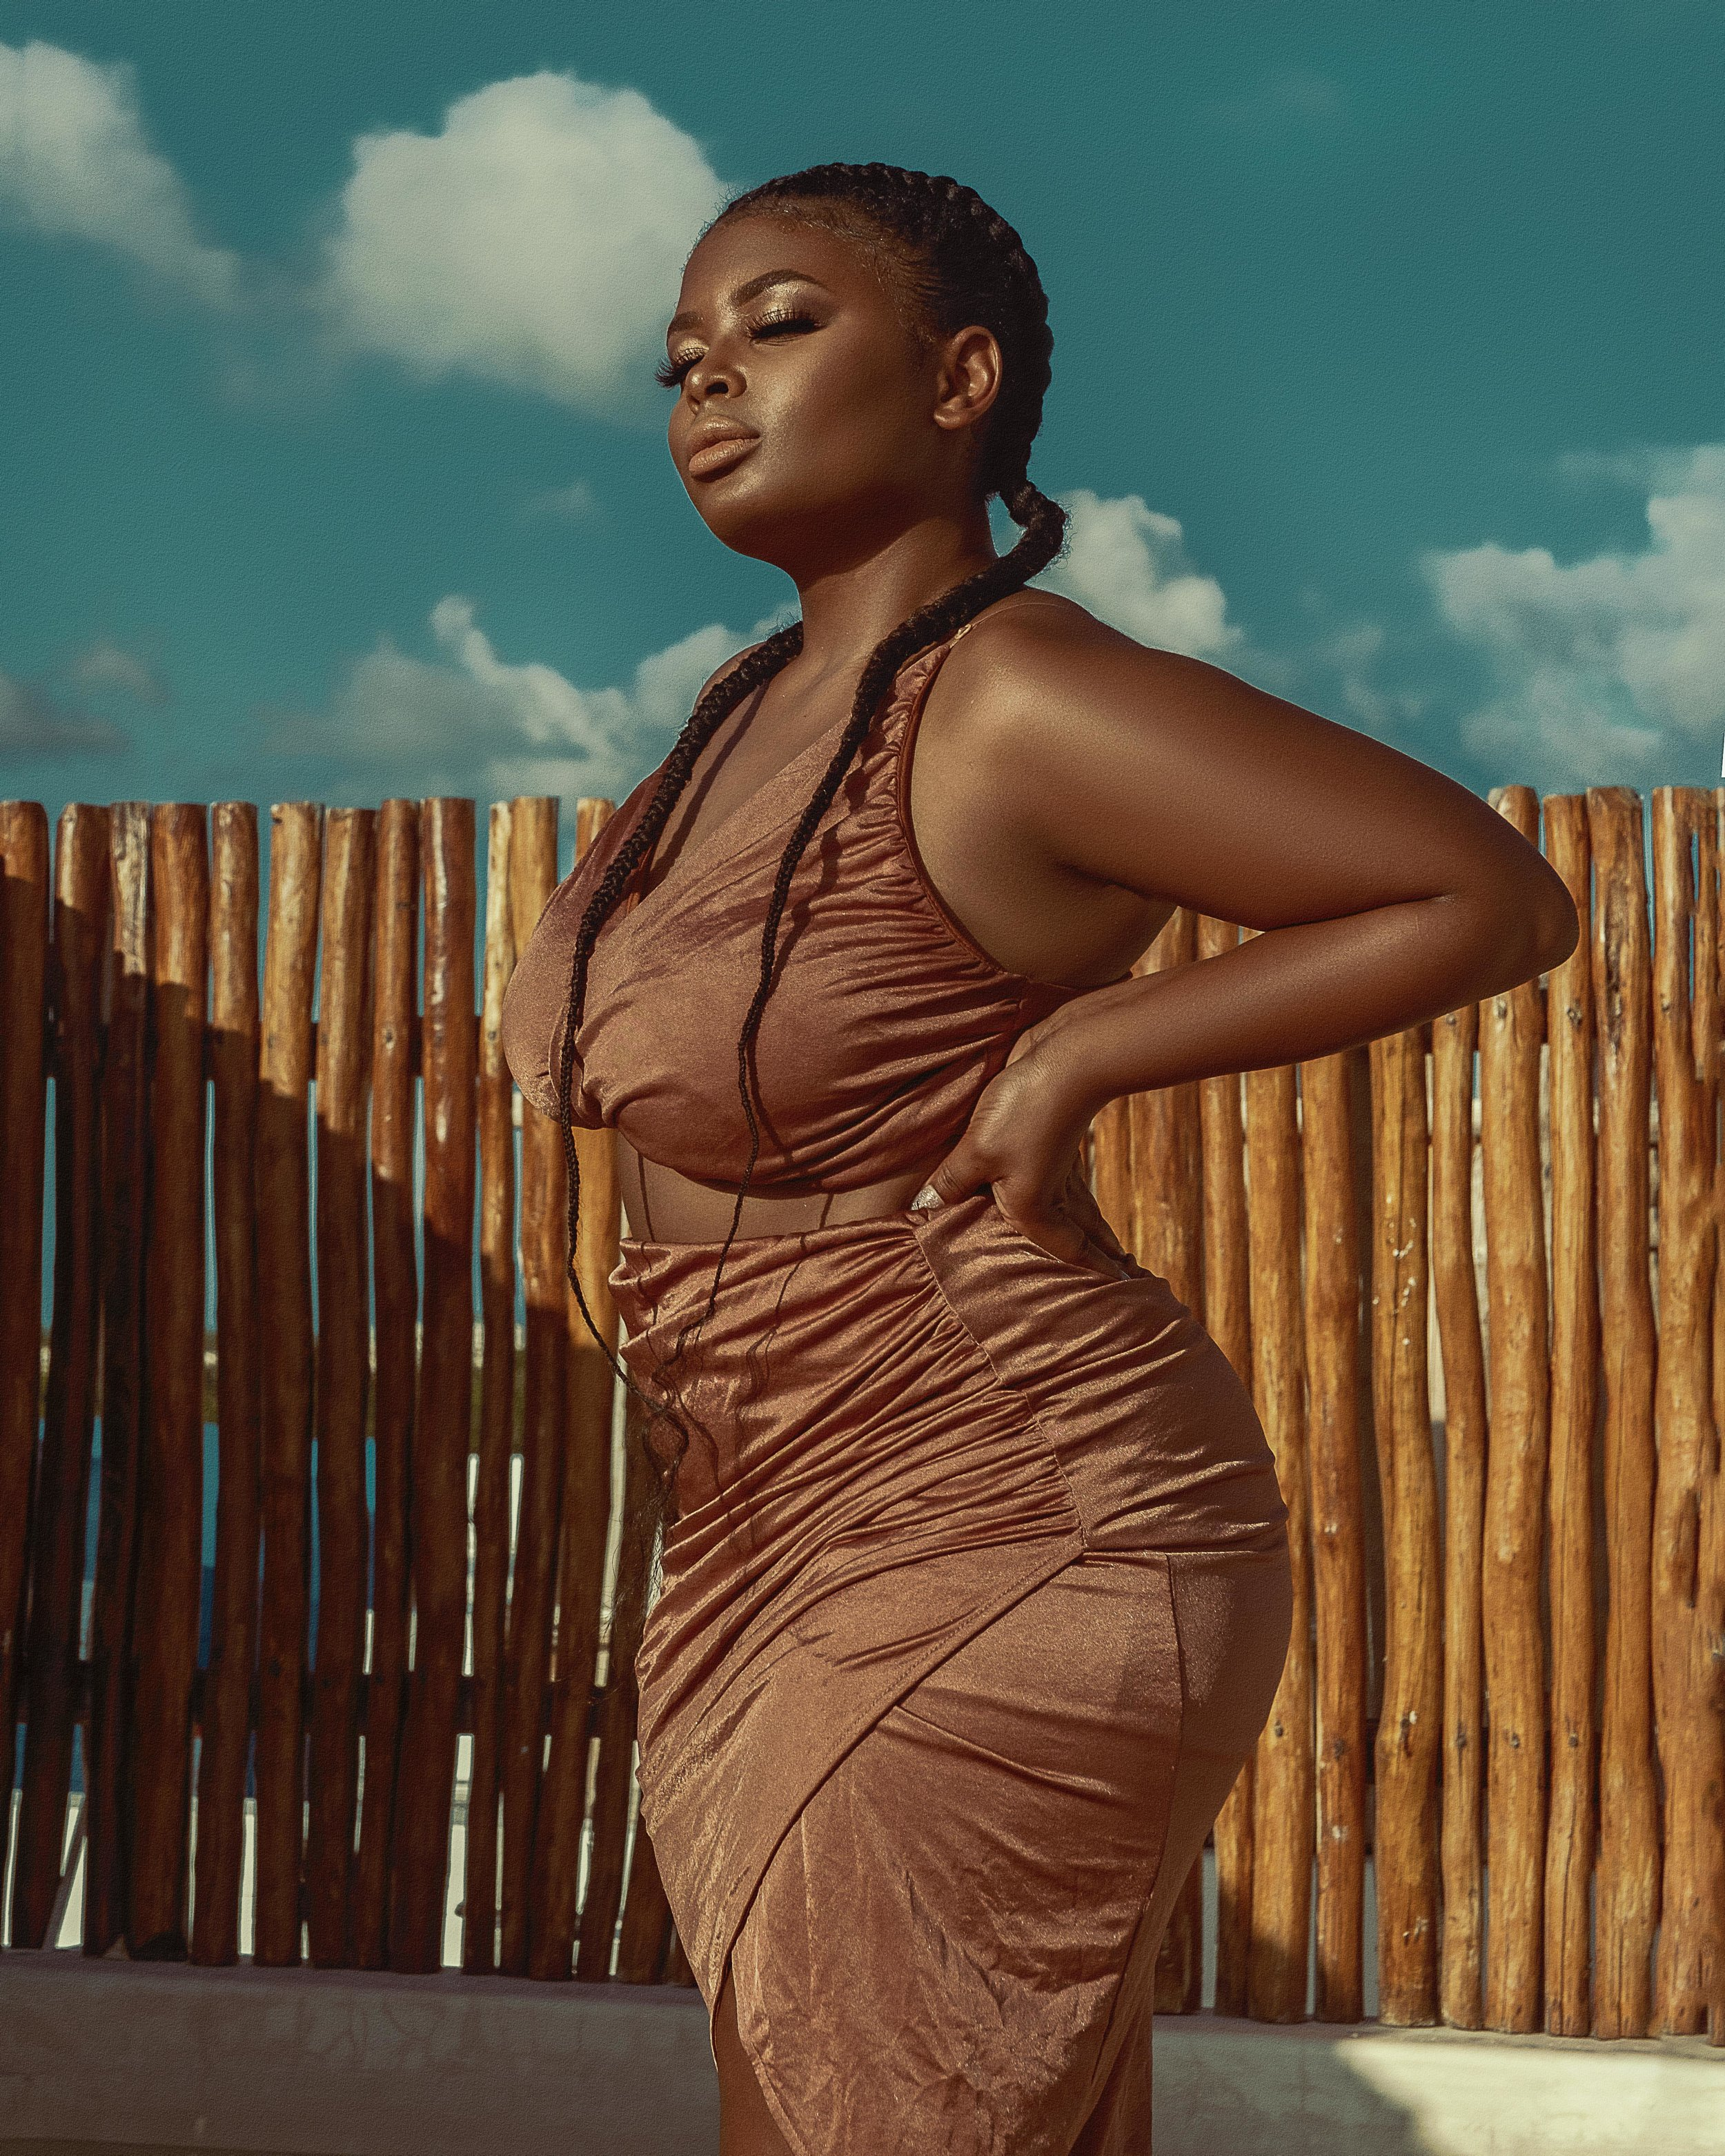 Tiana-Copper-Dress-Gifted-Mindset-Photography.jpg